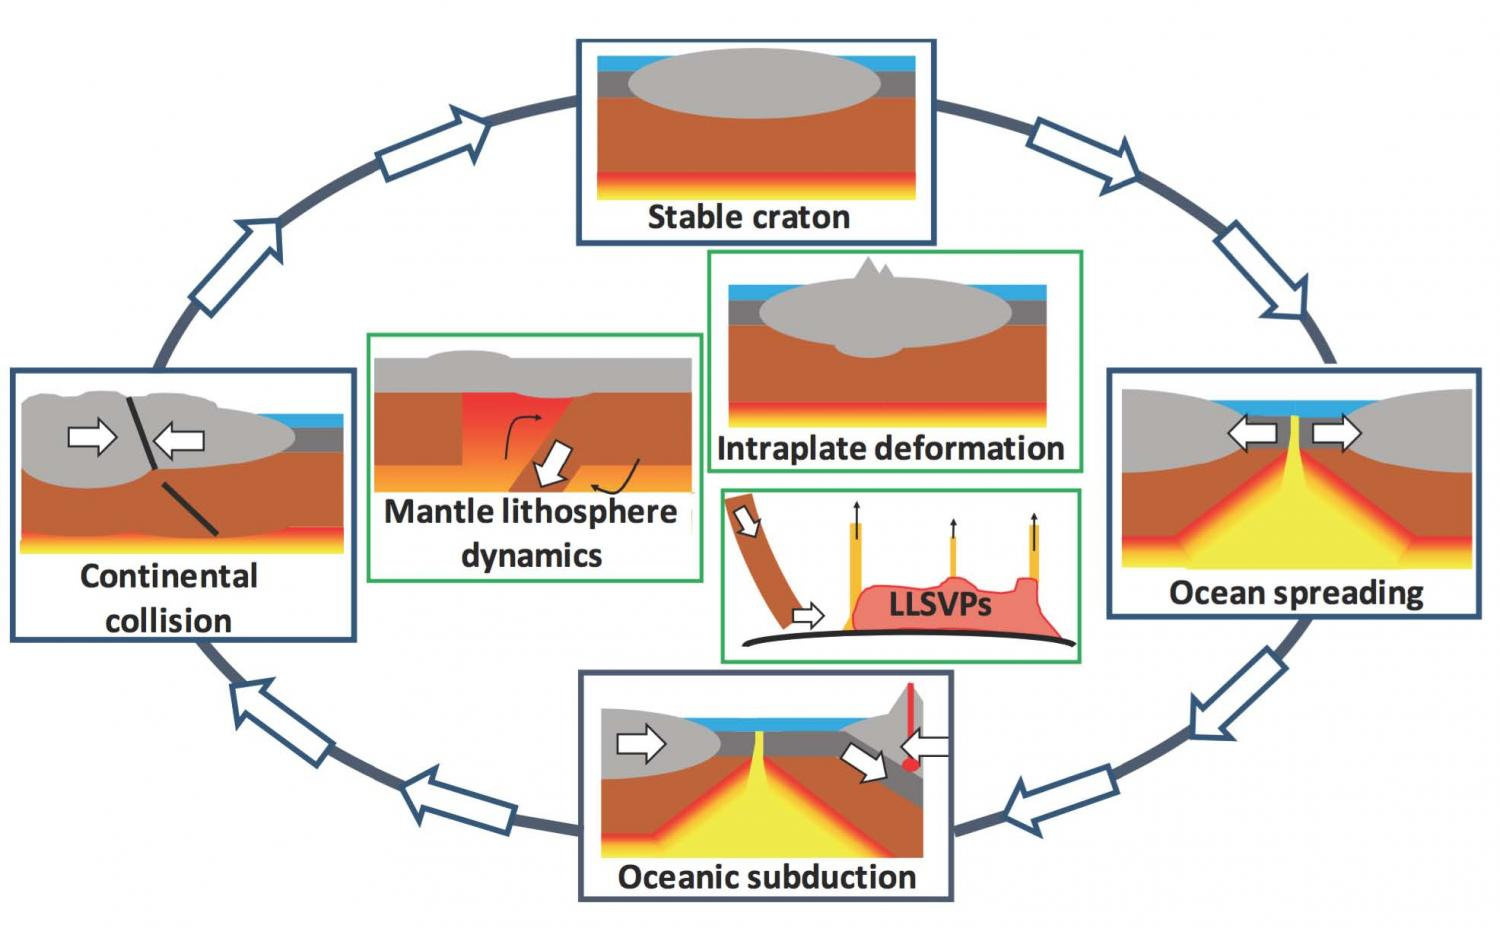 a study of the plate tectonics to understand the earth and its past Geology professor's study of olivine provides new data set for understanding plate tectonics plate tectonics, the idea that the surface of the earth is made up of plates that move apart and come back together, has been used to explain the locations of volcanoes and earthquakes since the 1960s.